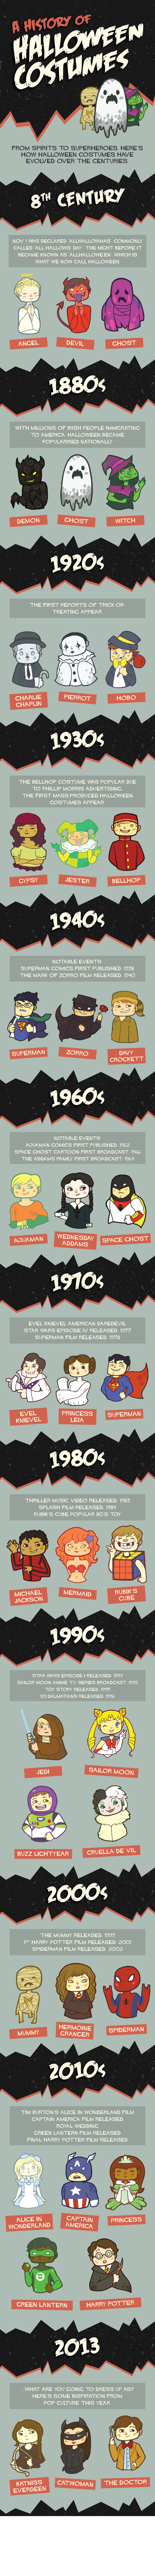 a-history-of-halloween-costumes final